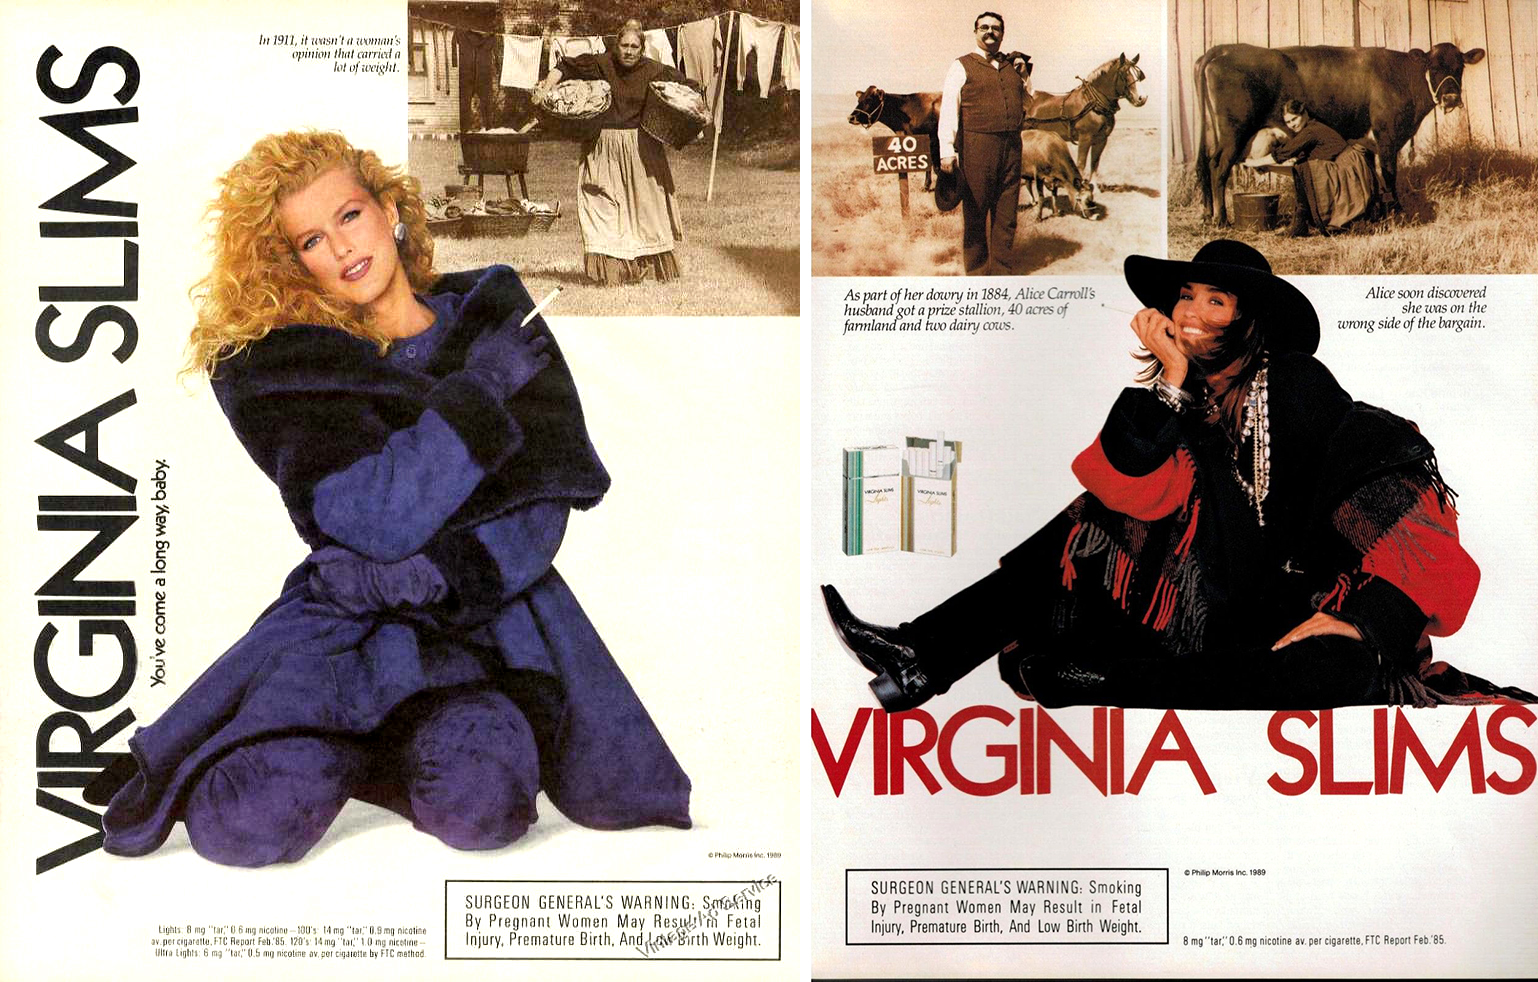 1989 virginia slims ad